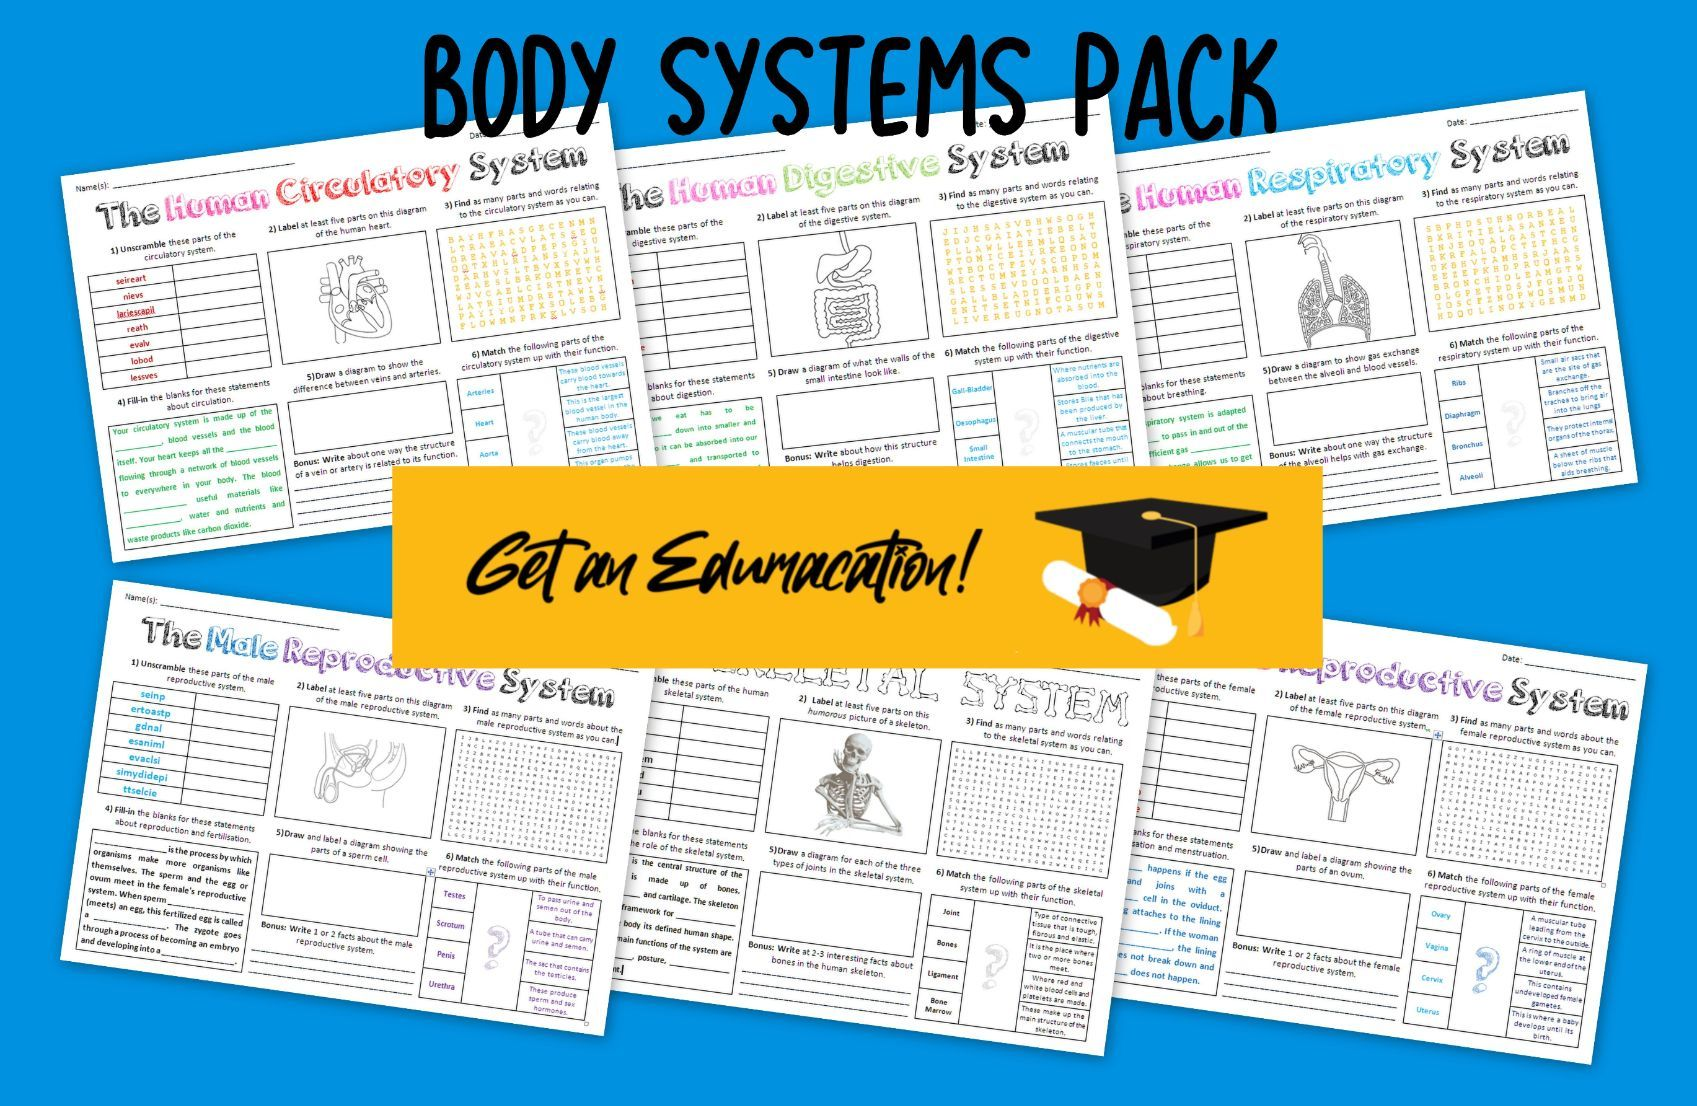 Body Systems Pack